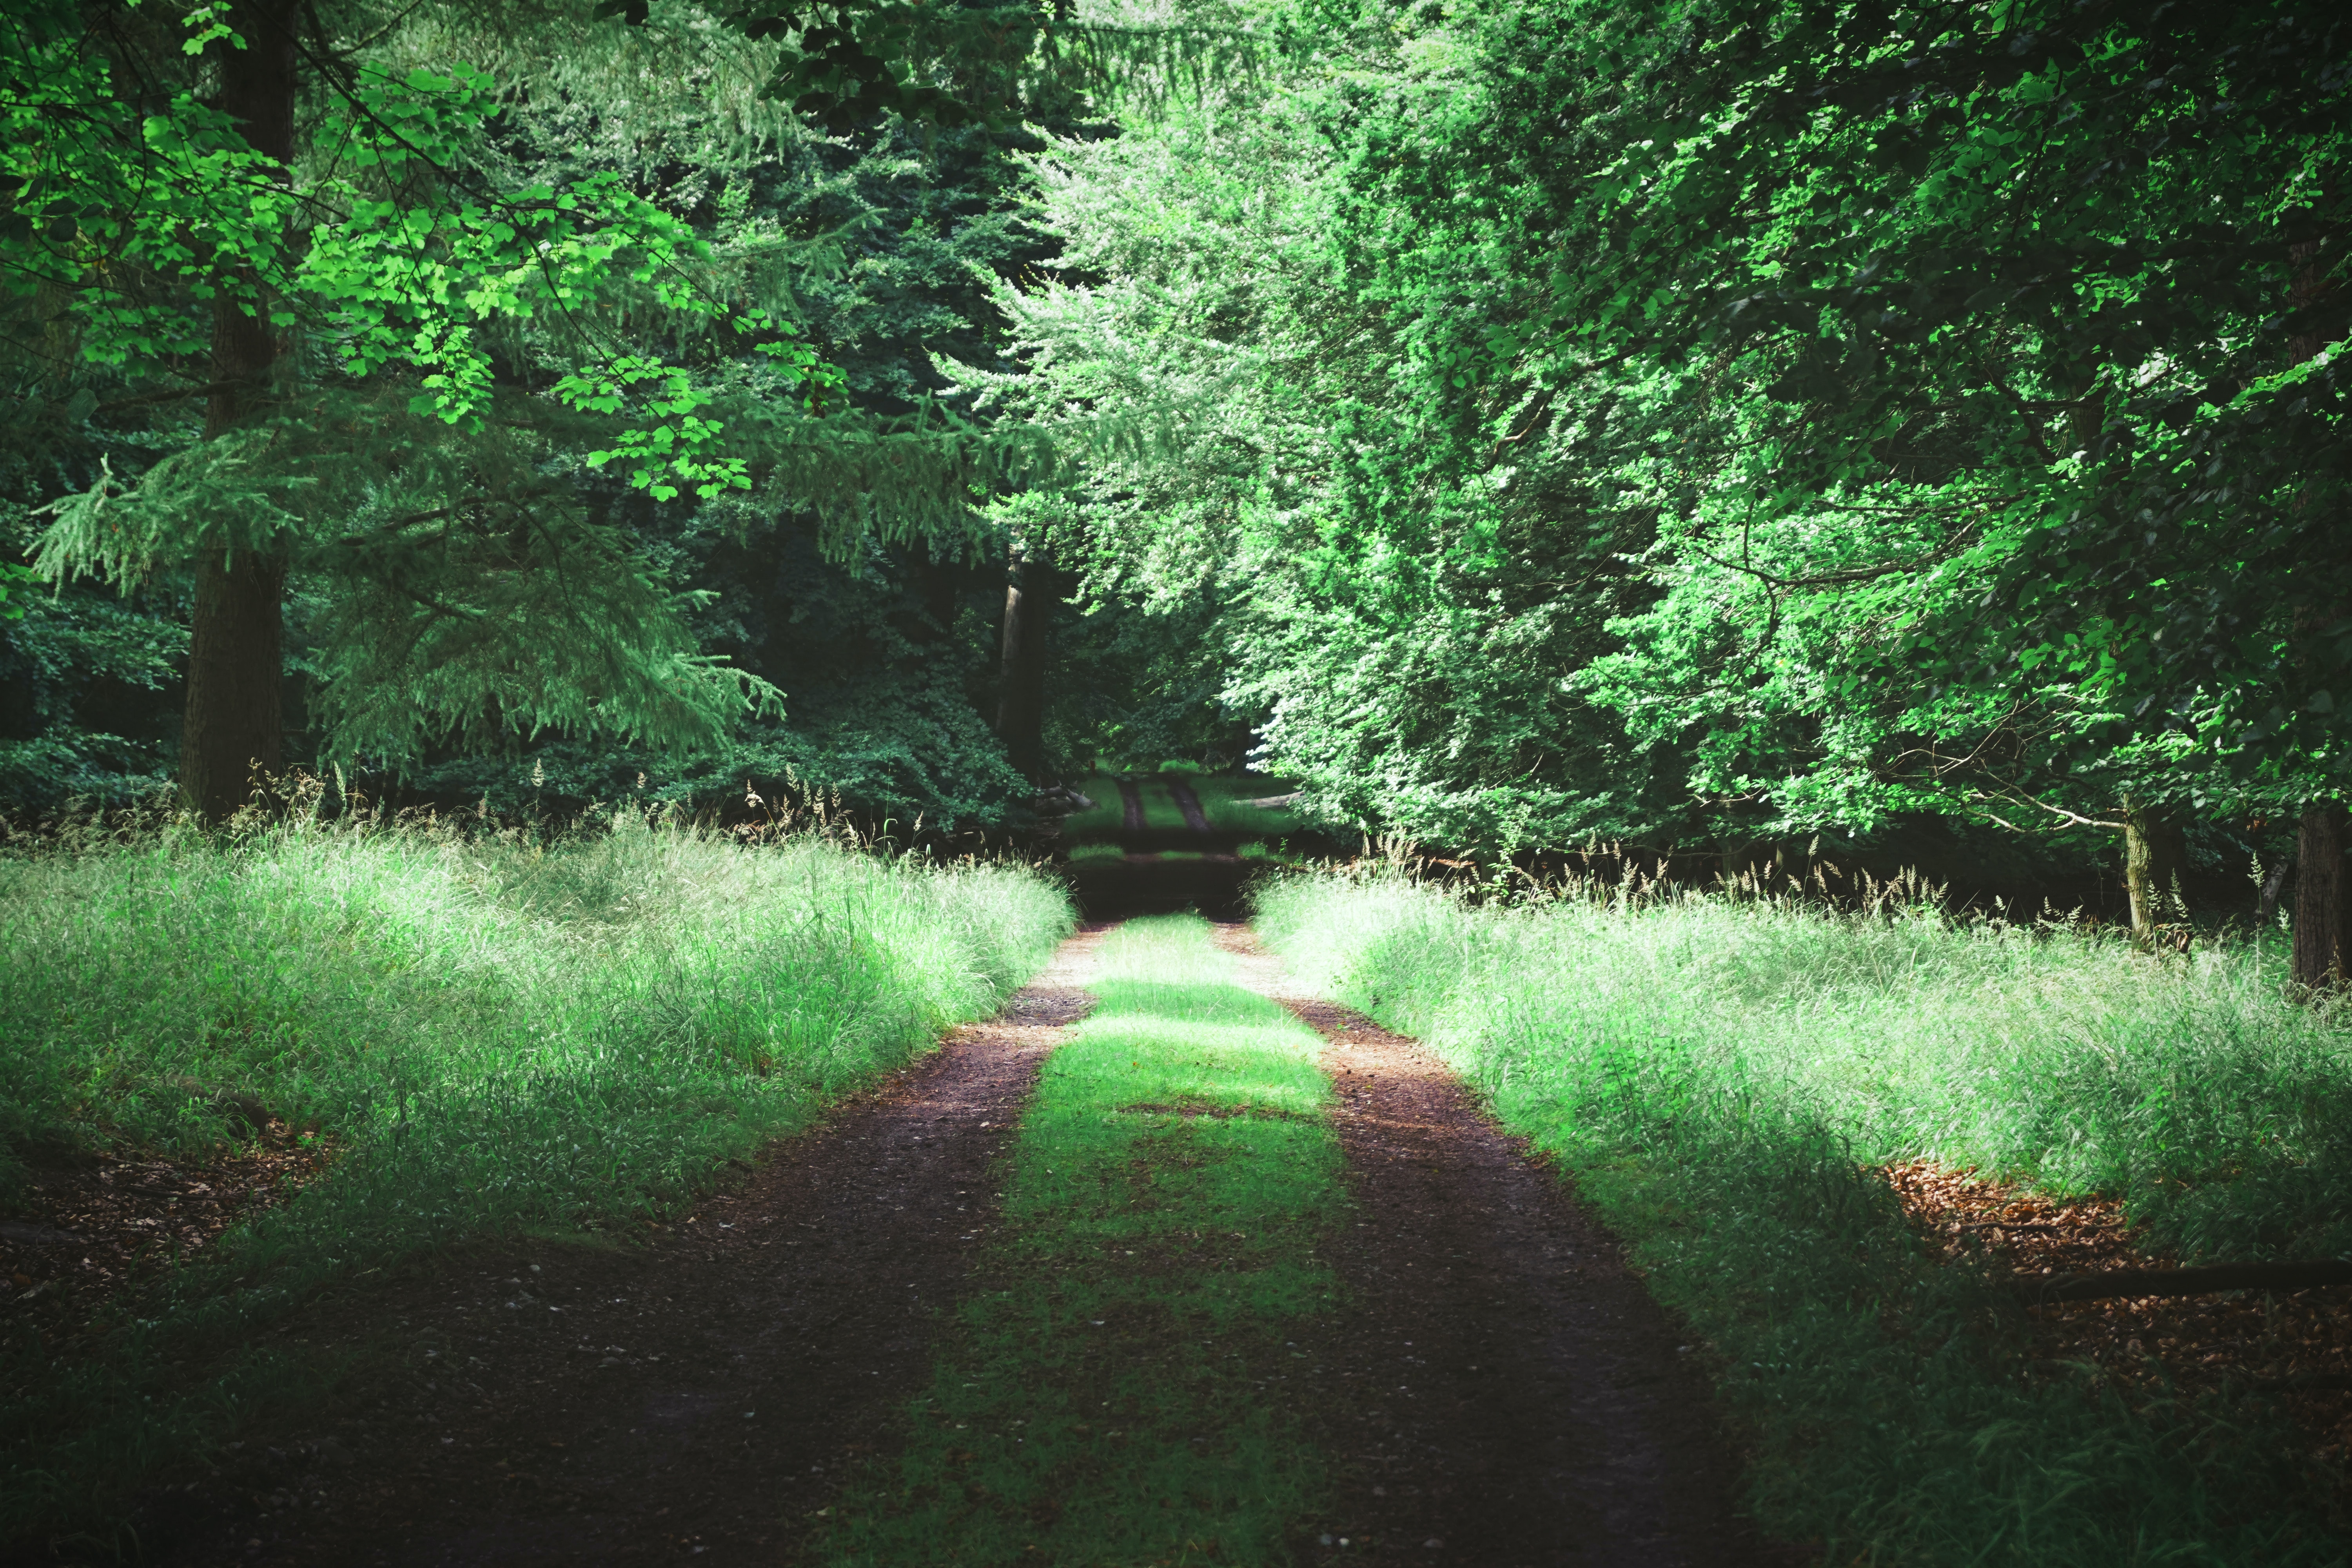 dirt road with green grasses on sides